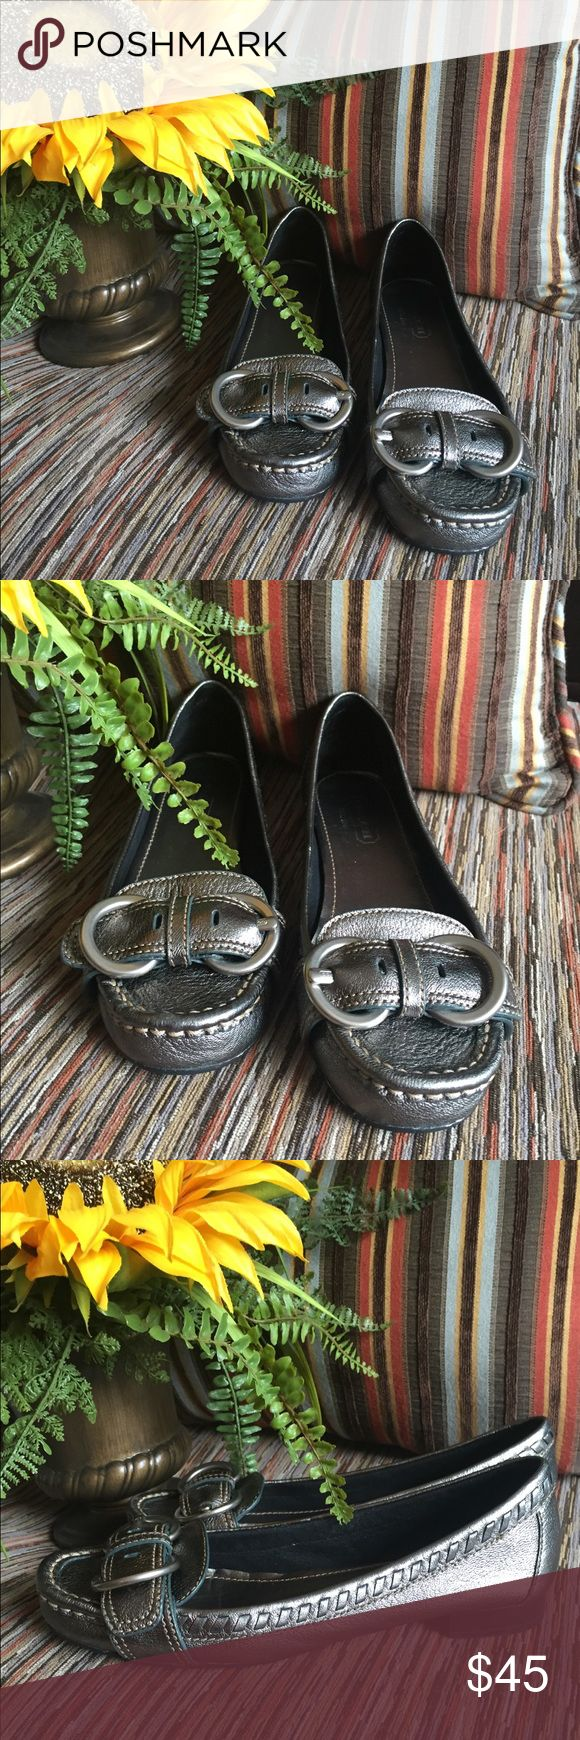 Coach Flats Gunmetal Coach Flats with Buckle on toe.  I think these were only worn once. EUC Coach Shoes Flats & Loafers